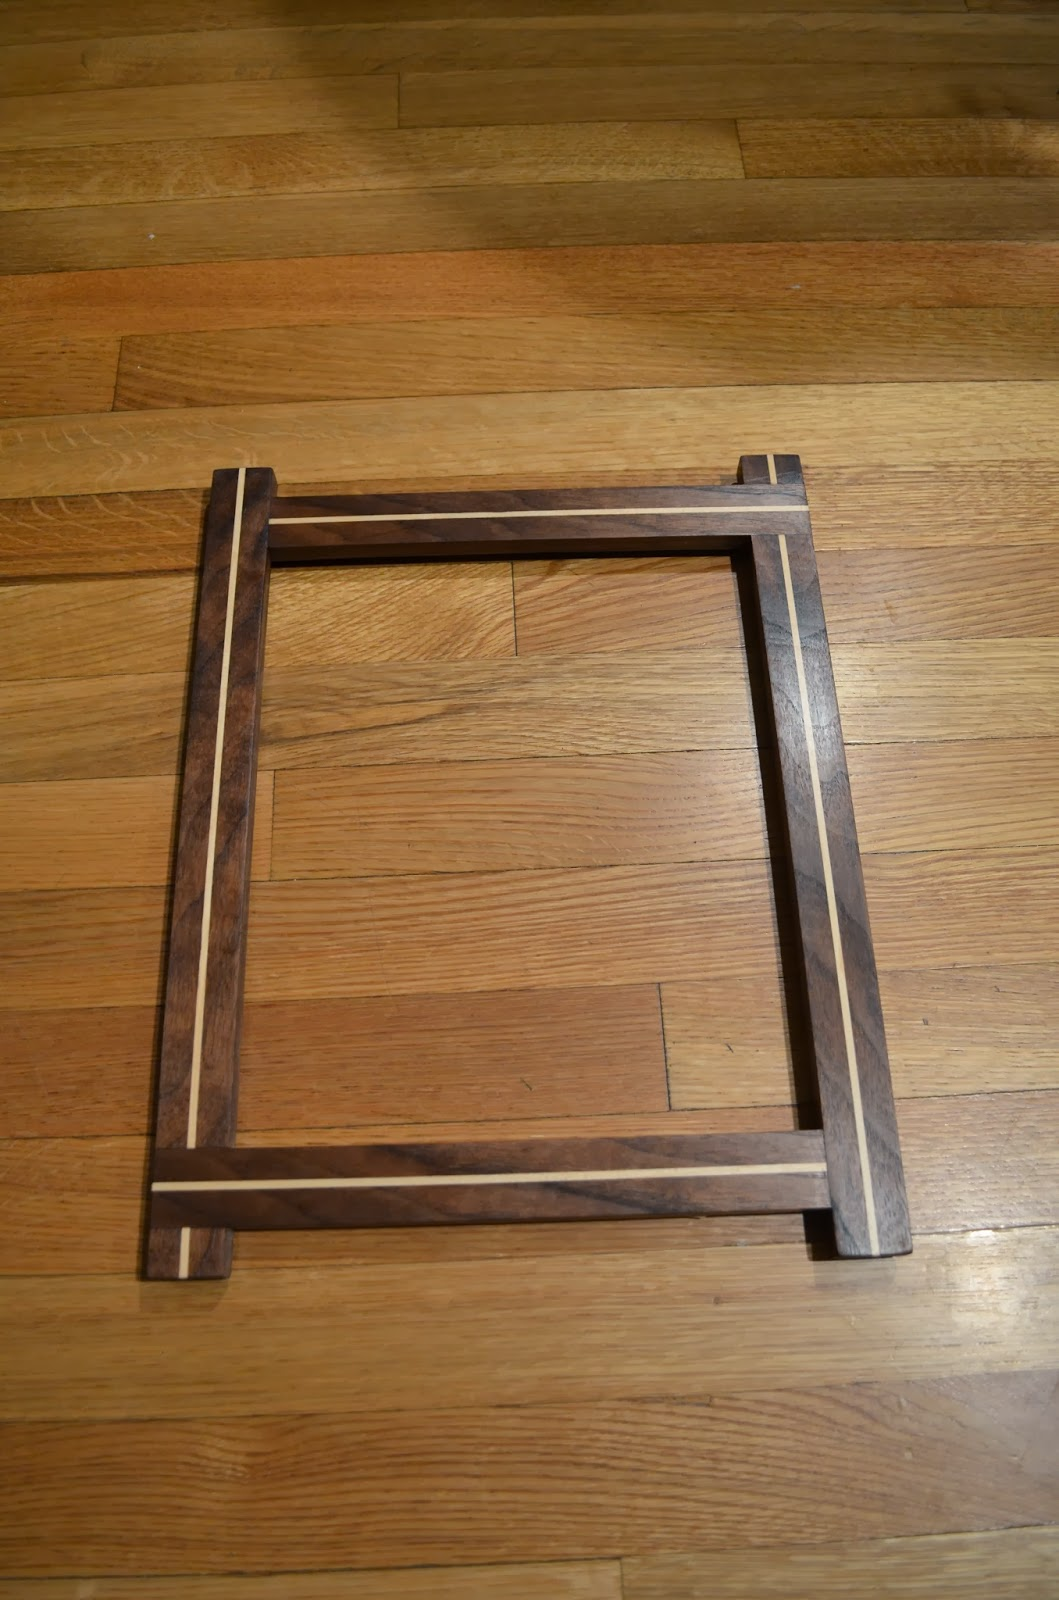 Picture frames vaughan woodworks the maple inlays pop out nicely over the walnut lap joints on all corners rotate for an circular overlapping effect thanks to rachel for the idea jeuxipadfo Image collections